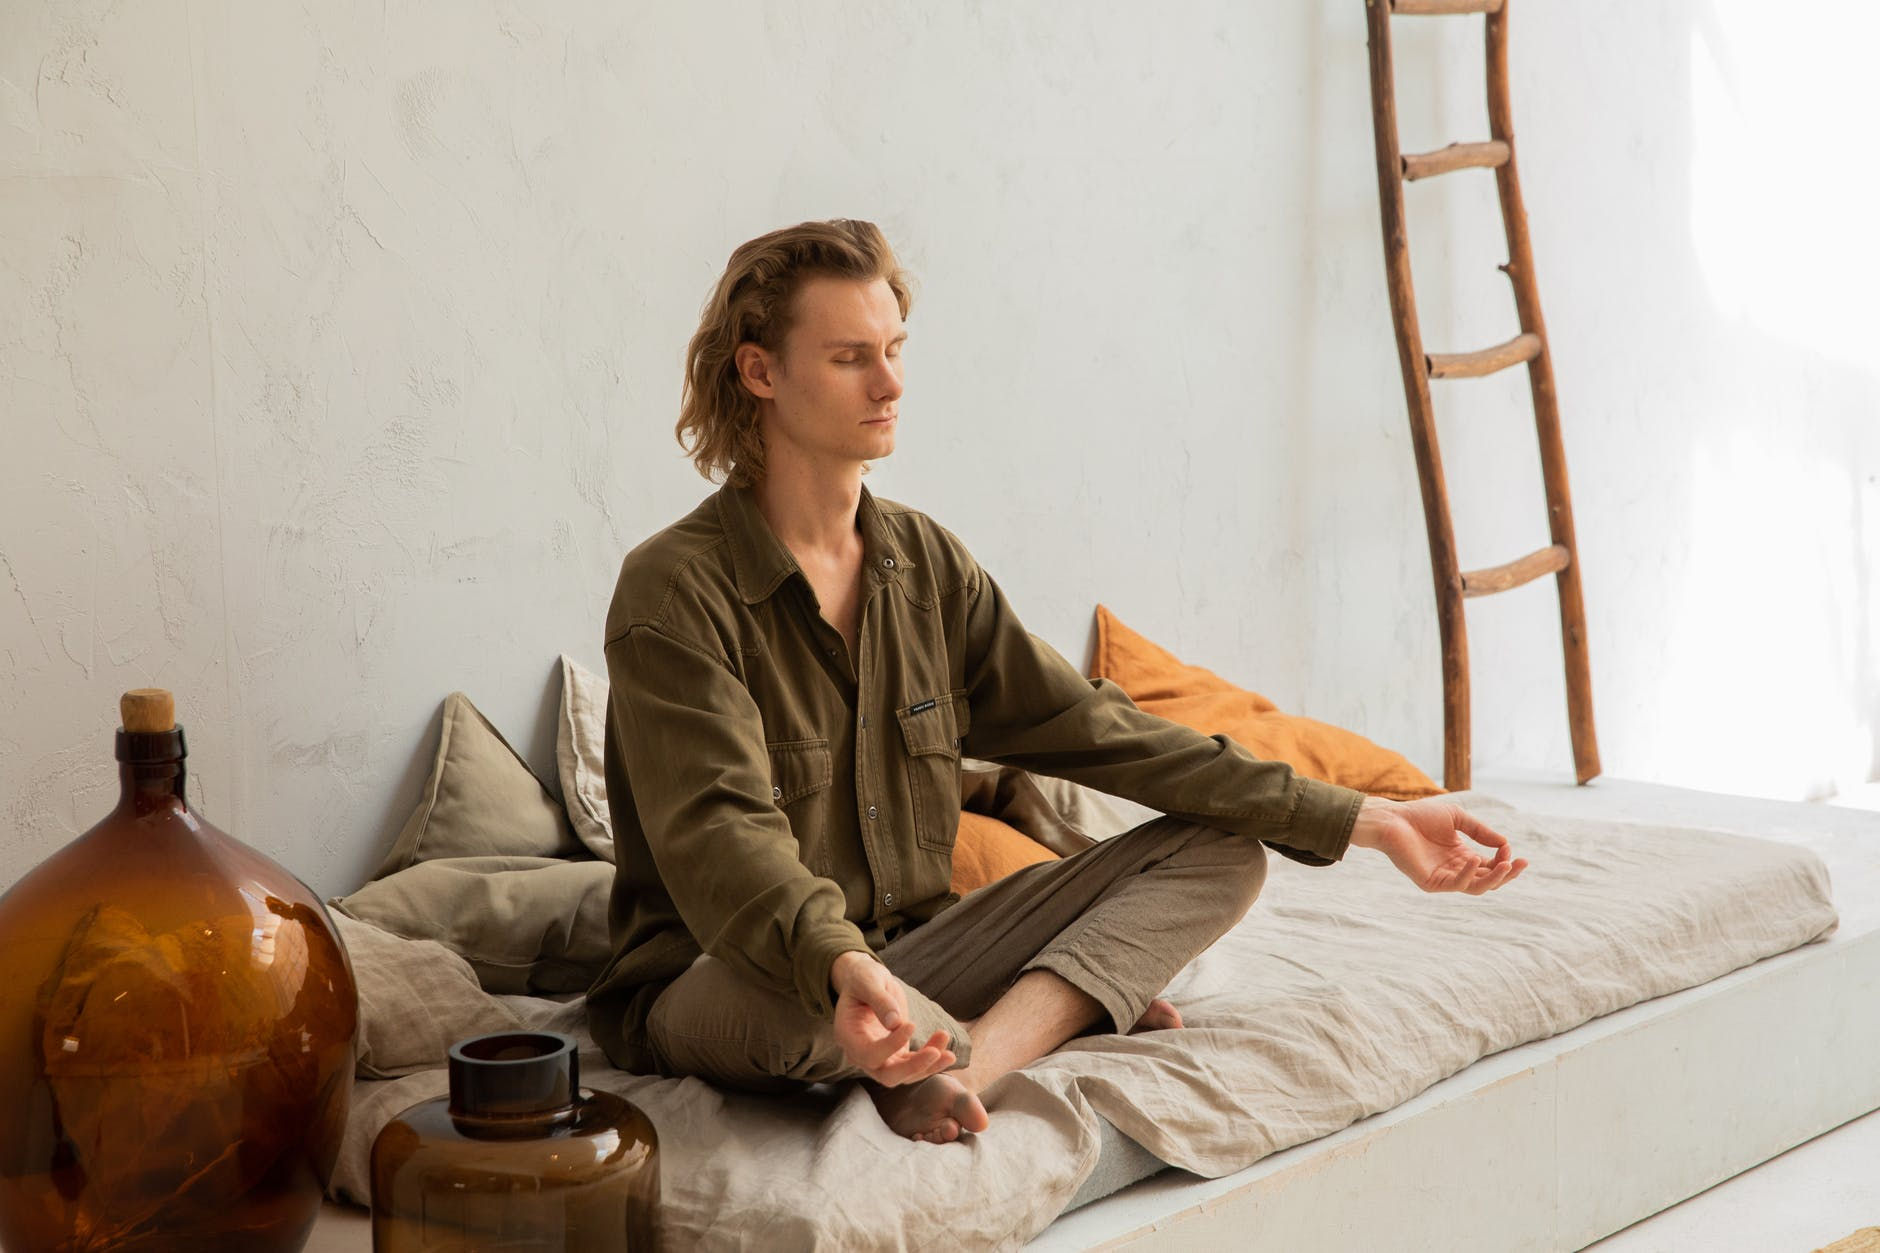 concentrated man meditating in lotus pose on mattress